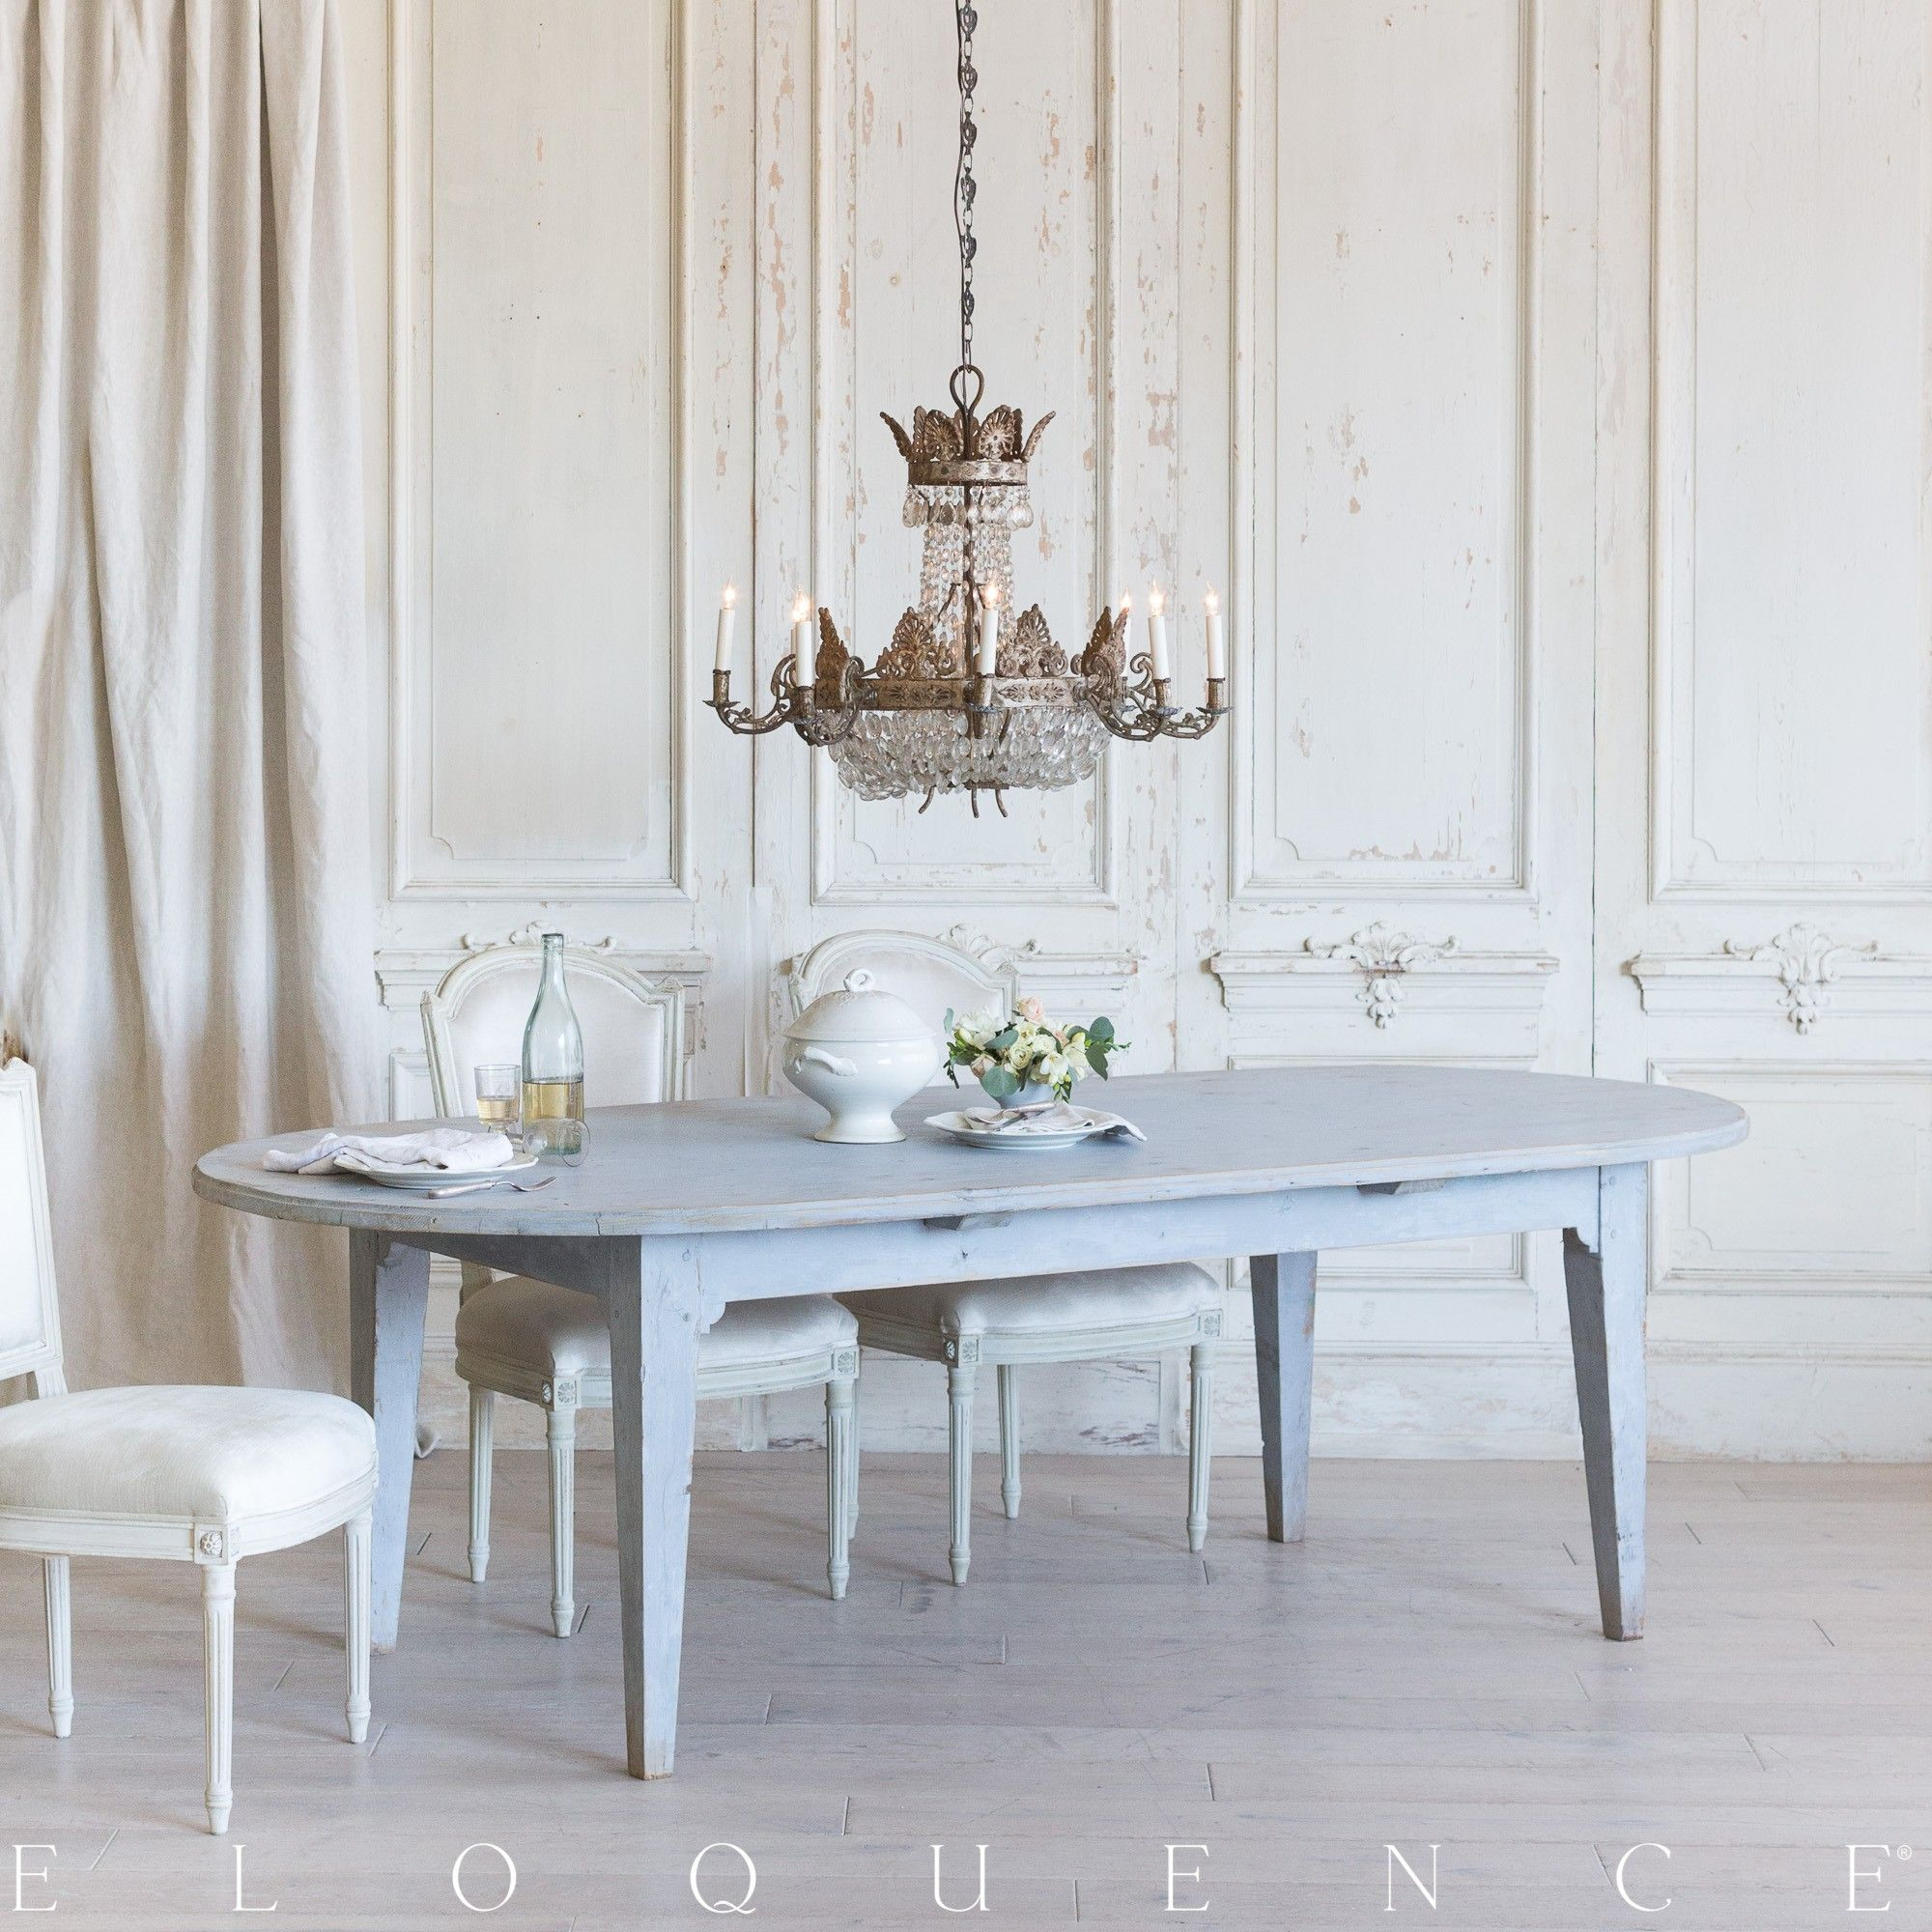 A eloquence oval dining table in a highly